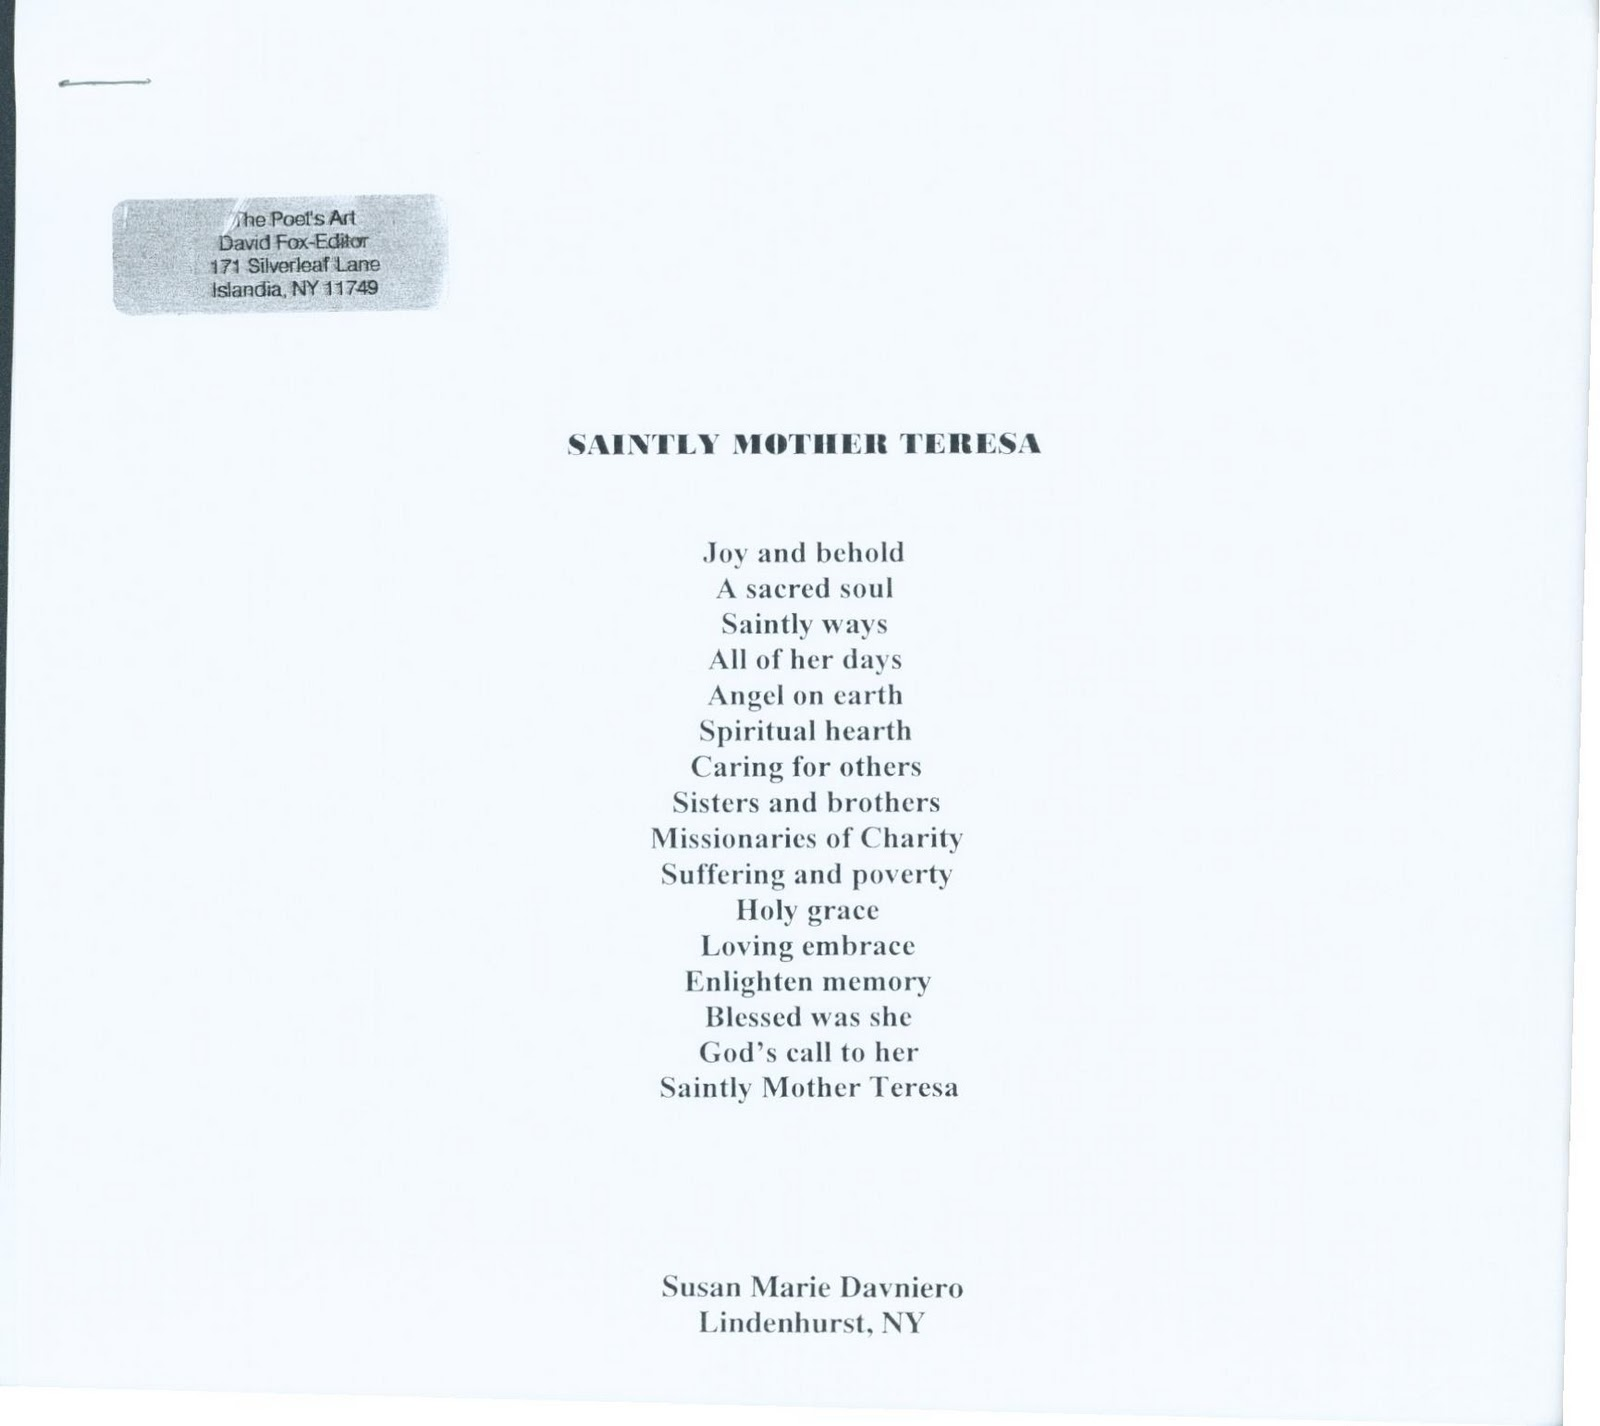 From The Great Poem: Susan Marie Davniero: Poems On Famous People